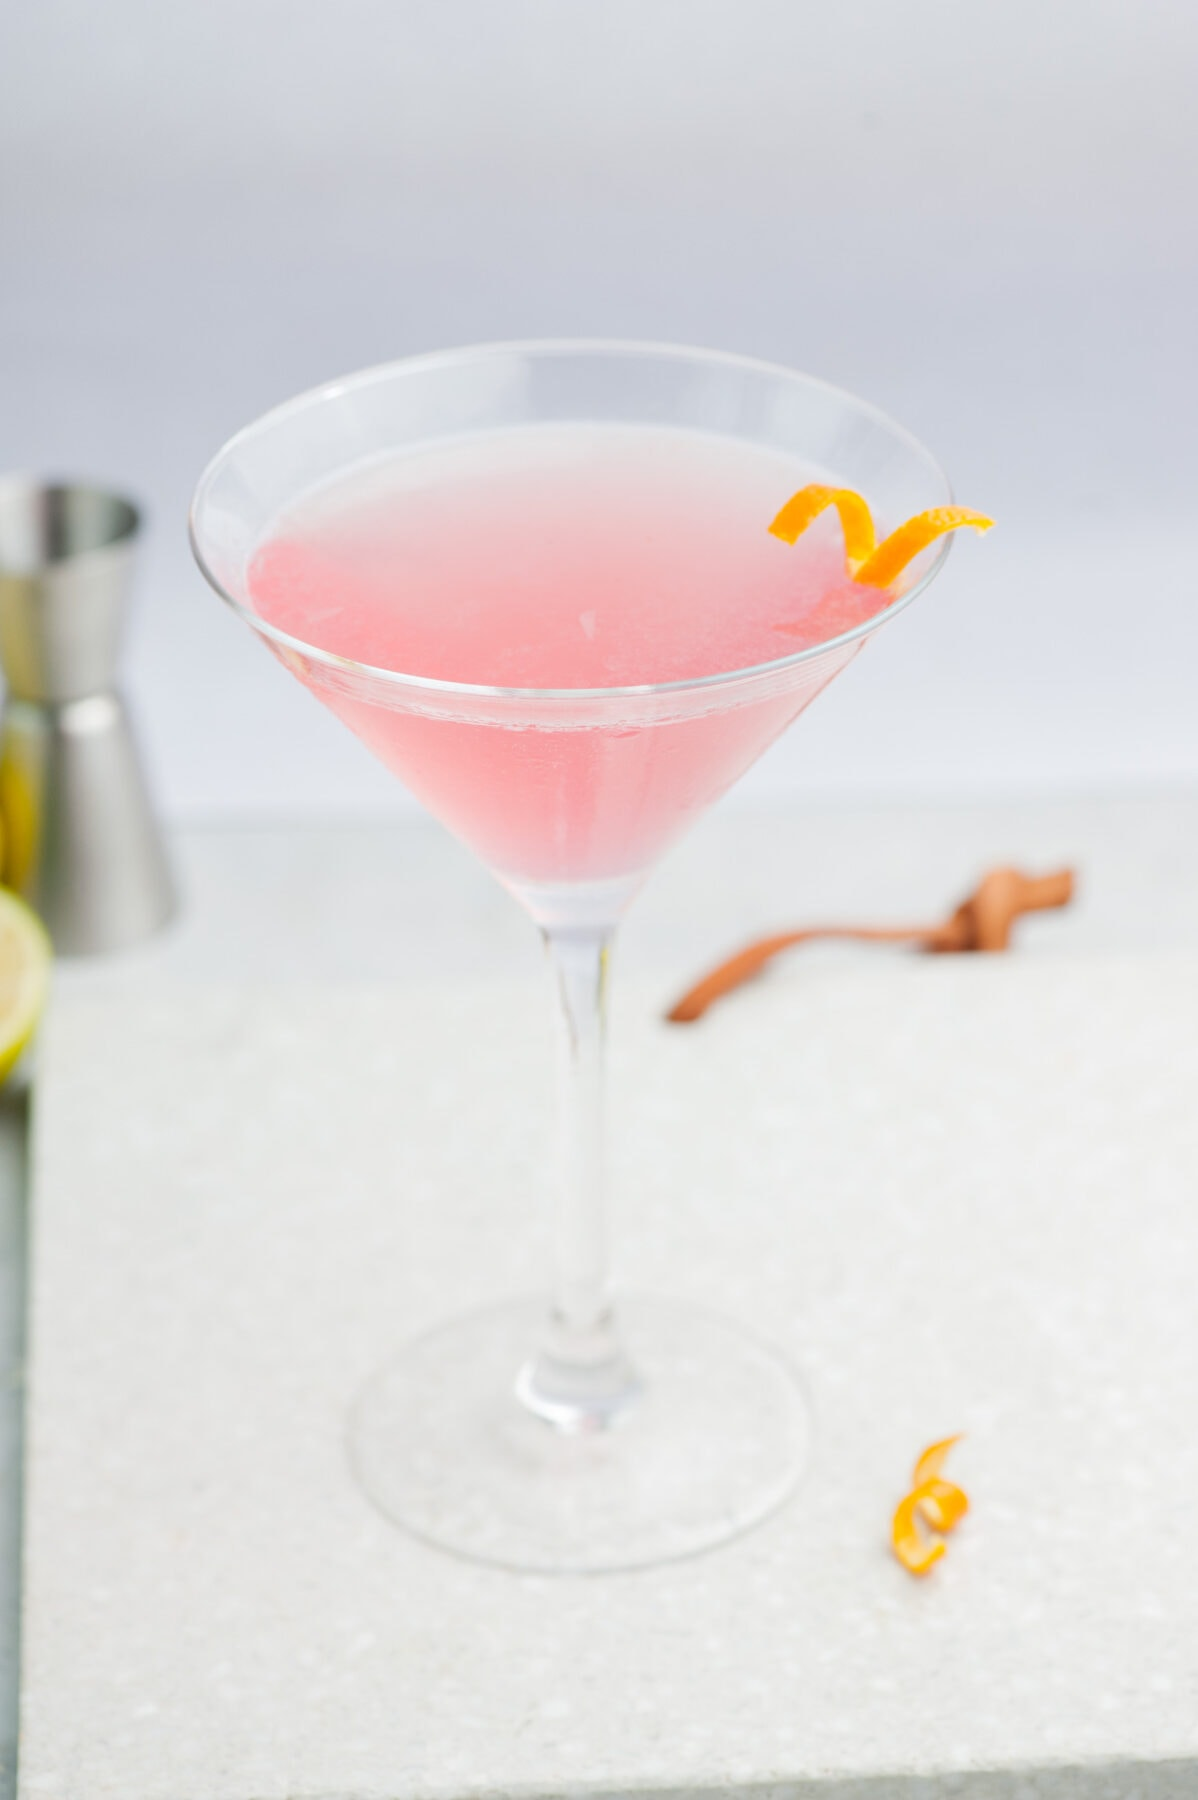 Cosmopolitan cocktail in a martini glass on a grey background, garnished with an orange twist.